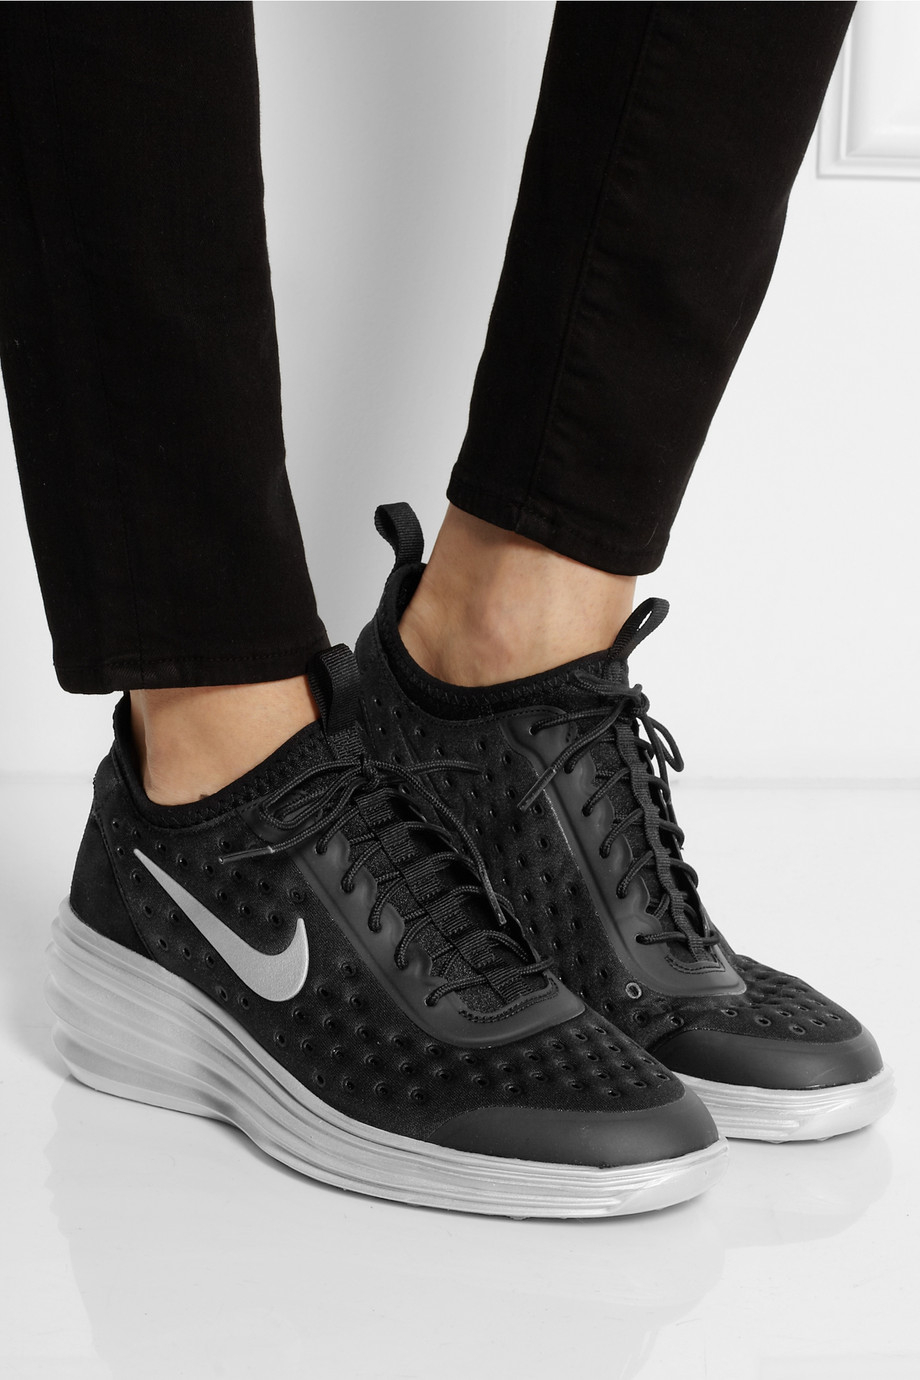 Nike Lunarelite Sky Hi Canvas and Suede Wedge Sneakers in ...